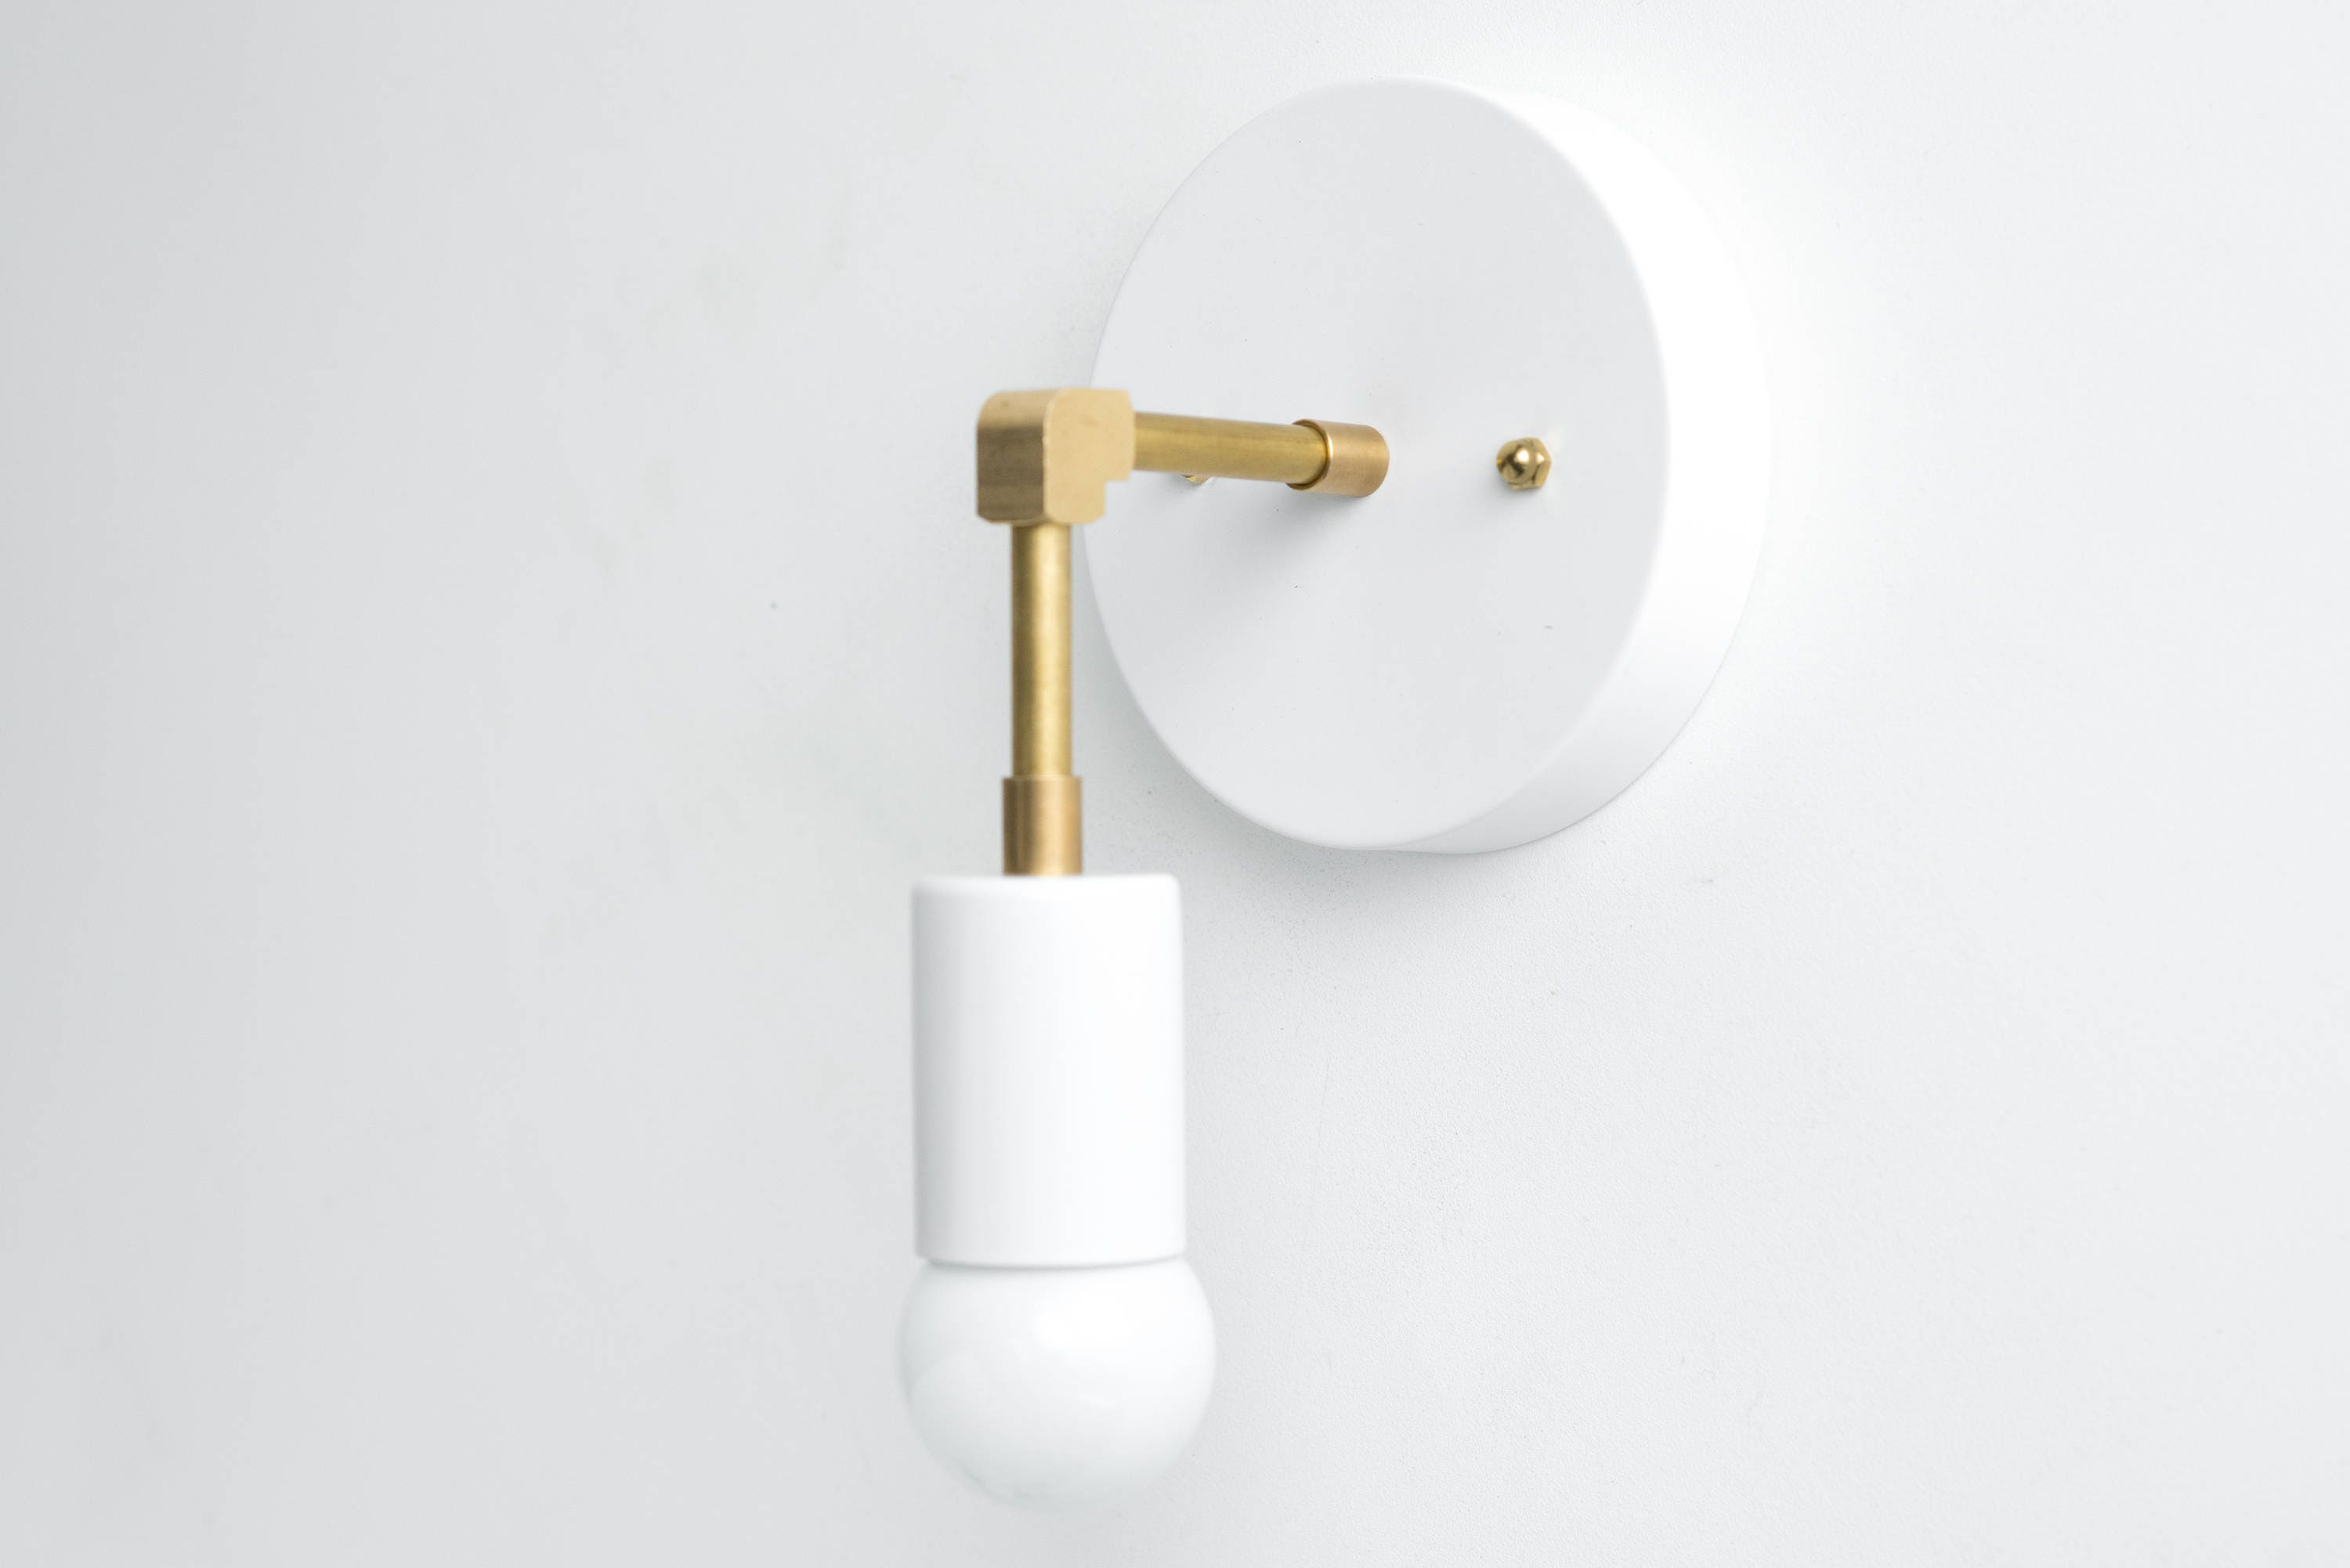 imperial lights buy boyd sconces to electric exterior transitional order sconce fin industrial and wall lighting by made pin